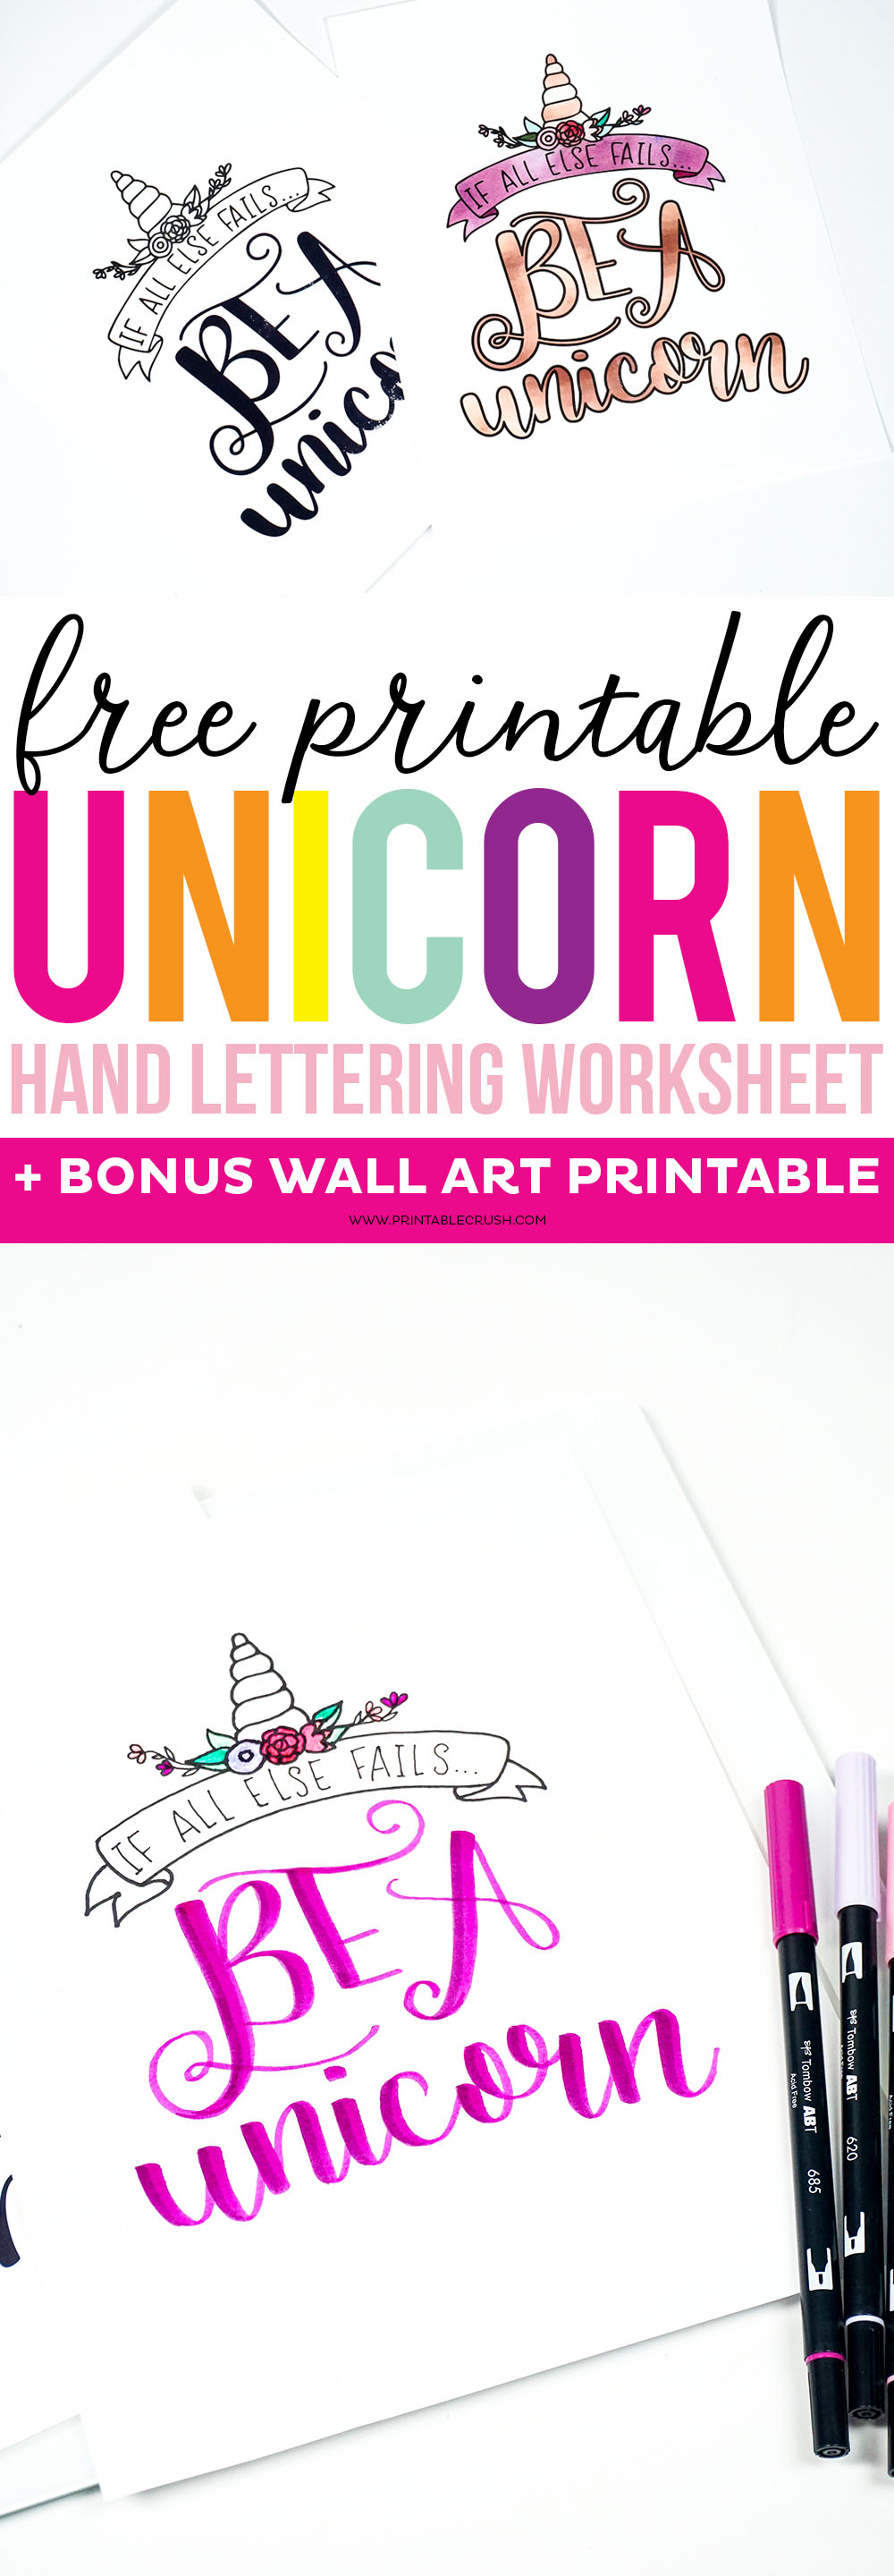 Get this FREE Printable Unicorn Hand Lettering Worksheet and Wall Art. Practice your lettering, and remember you can always fall back on being a unicorn. via @printablecrush